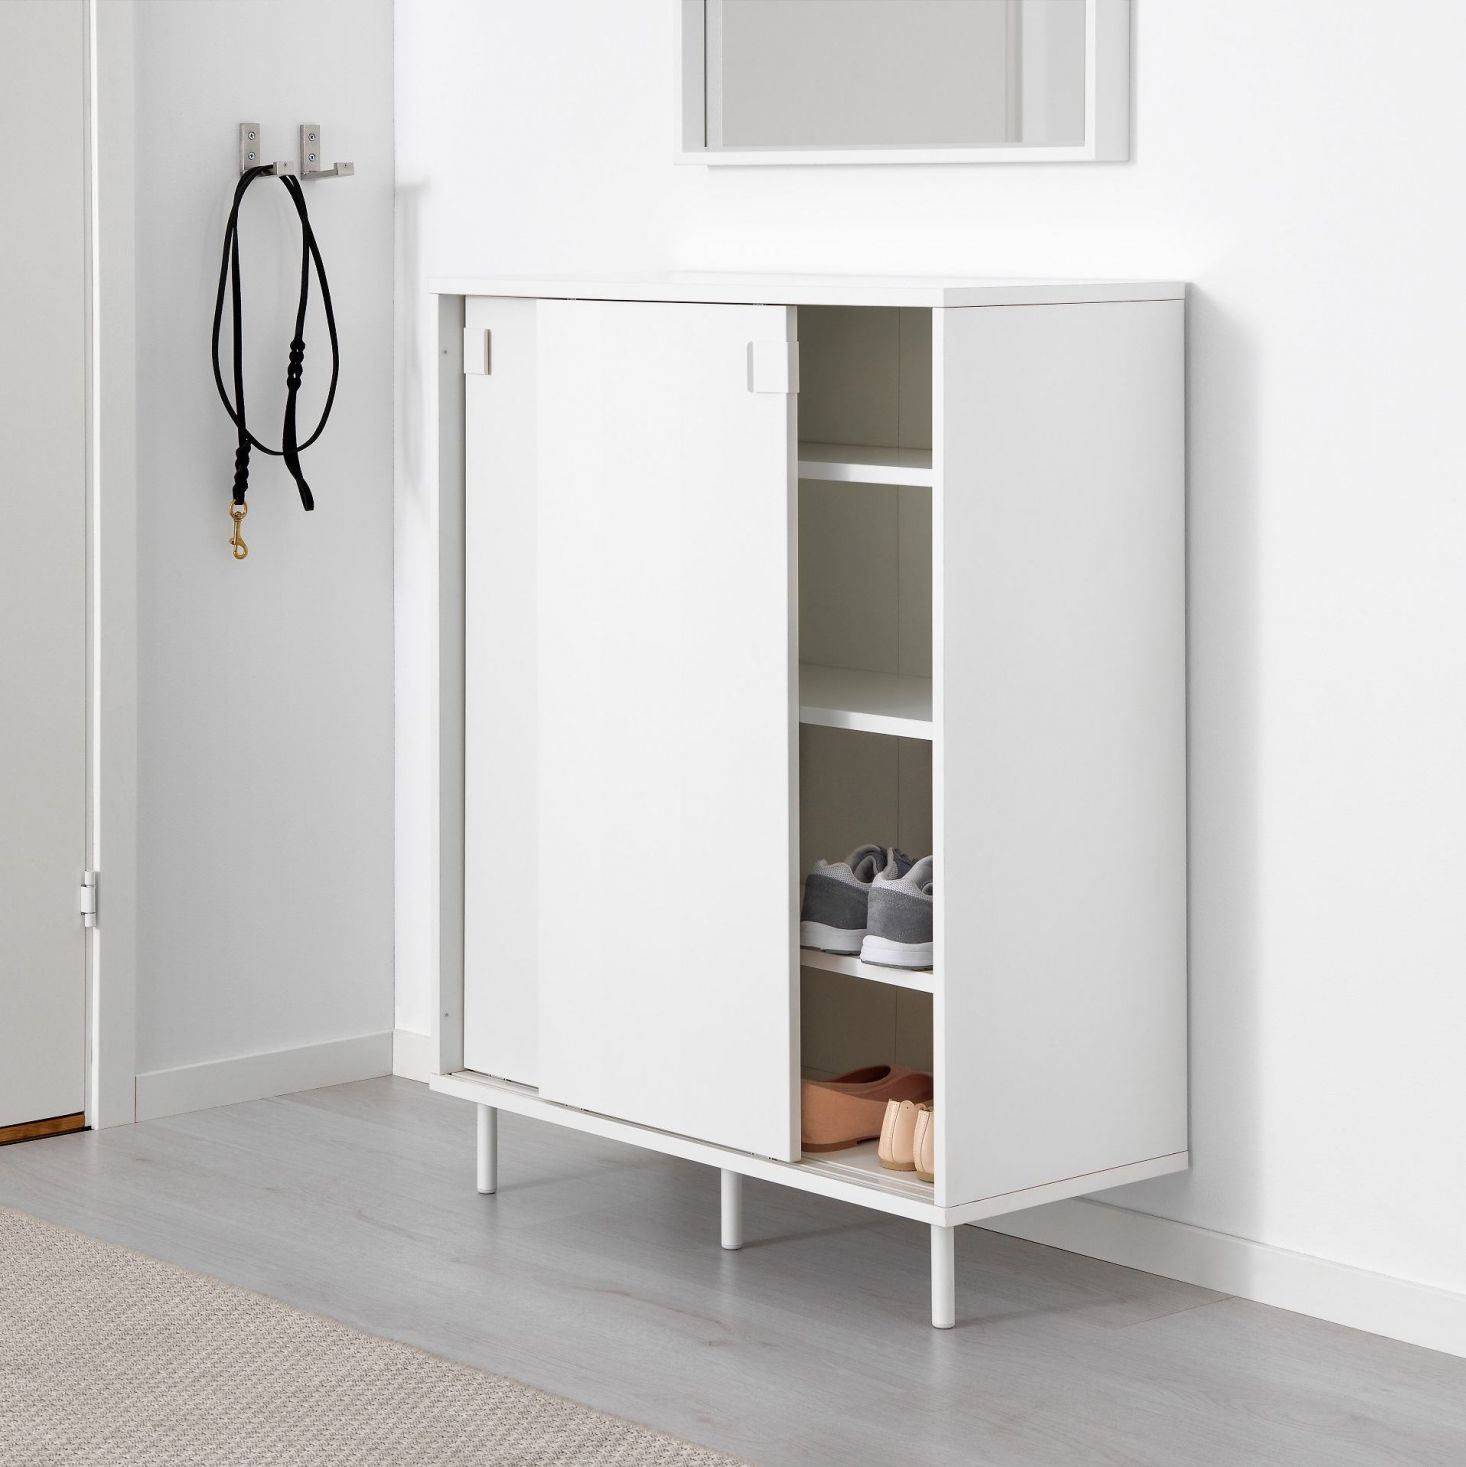 Ikea Entryway Storage Solutions For Minimalists On A Budget The Organized Home Ikea Shoe Storage Shoe Storage Cabinet Ikea Storage